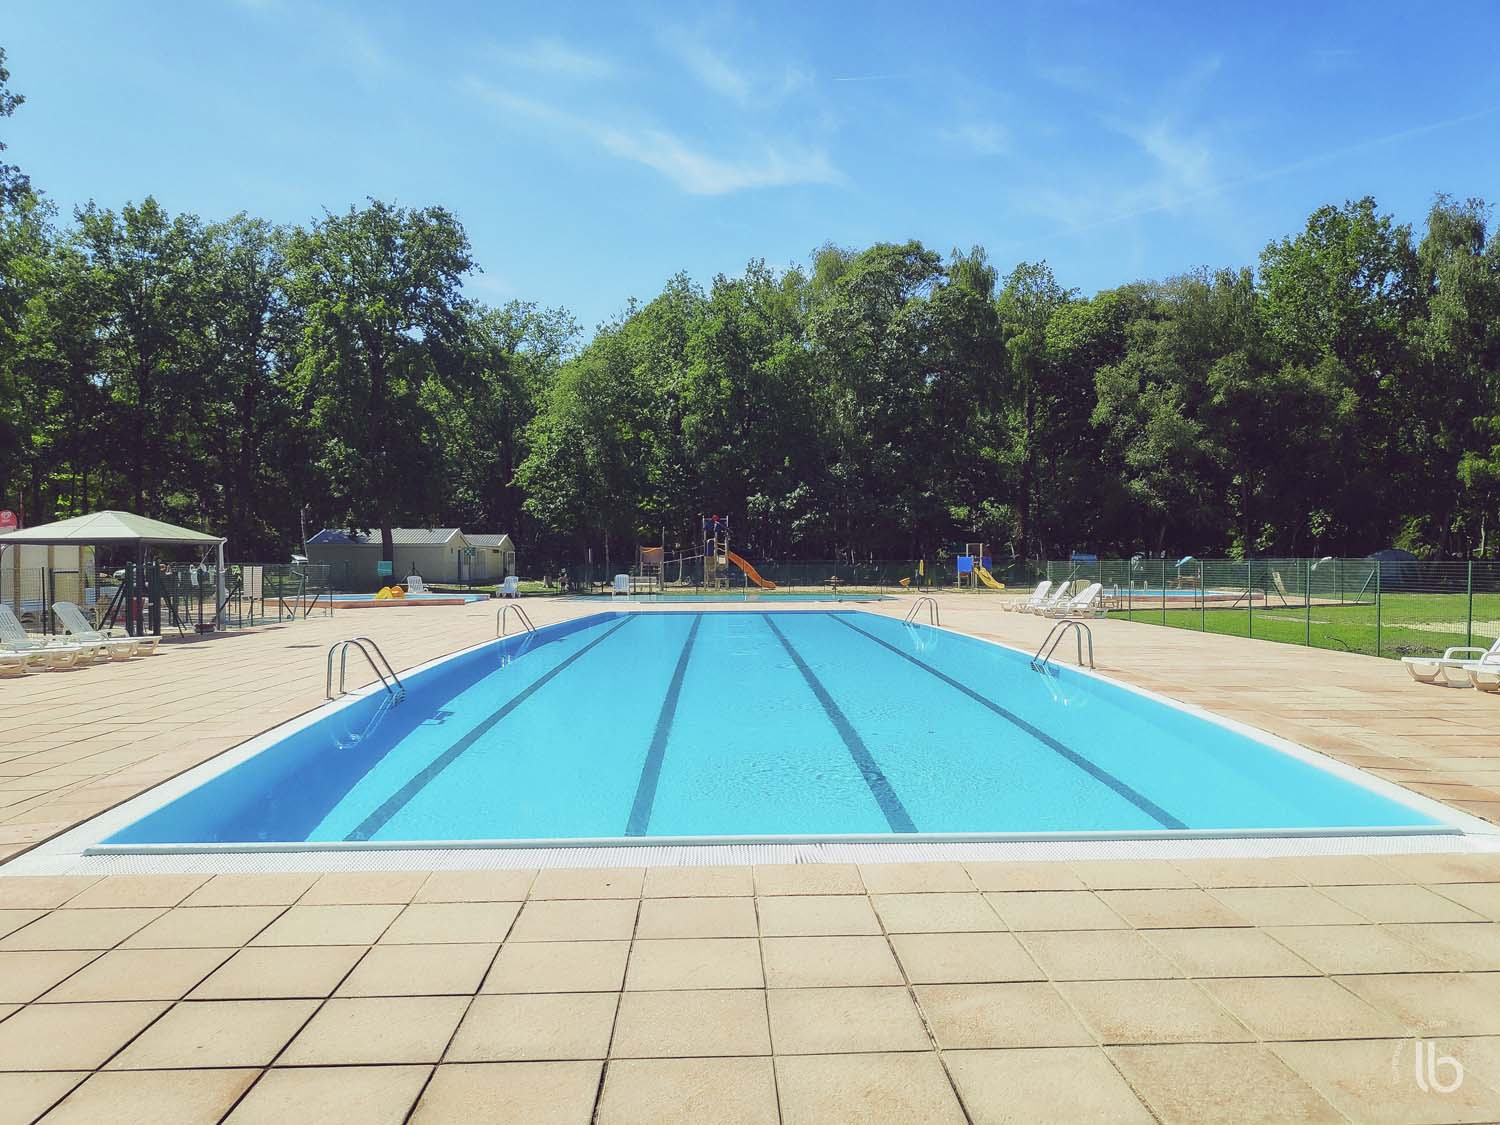 Piscine-Camping-La-Musardiere-Milly-La-Foret-1500X1500 ... intérieur Piscine Milly La Foret